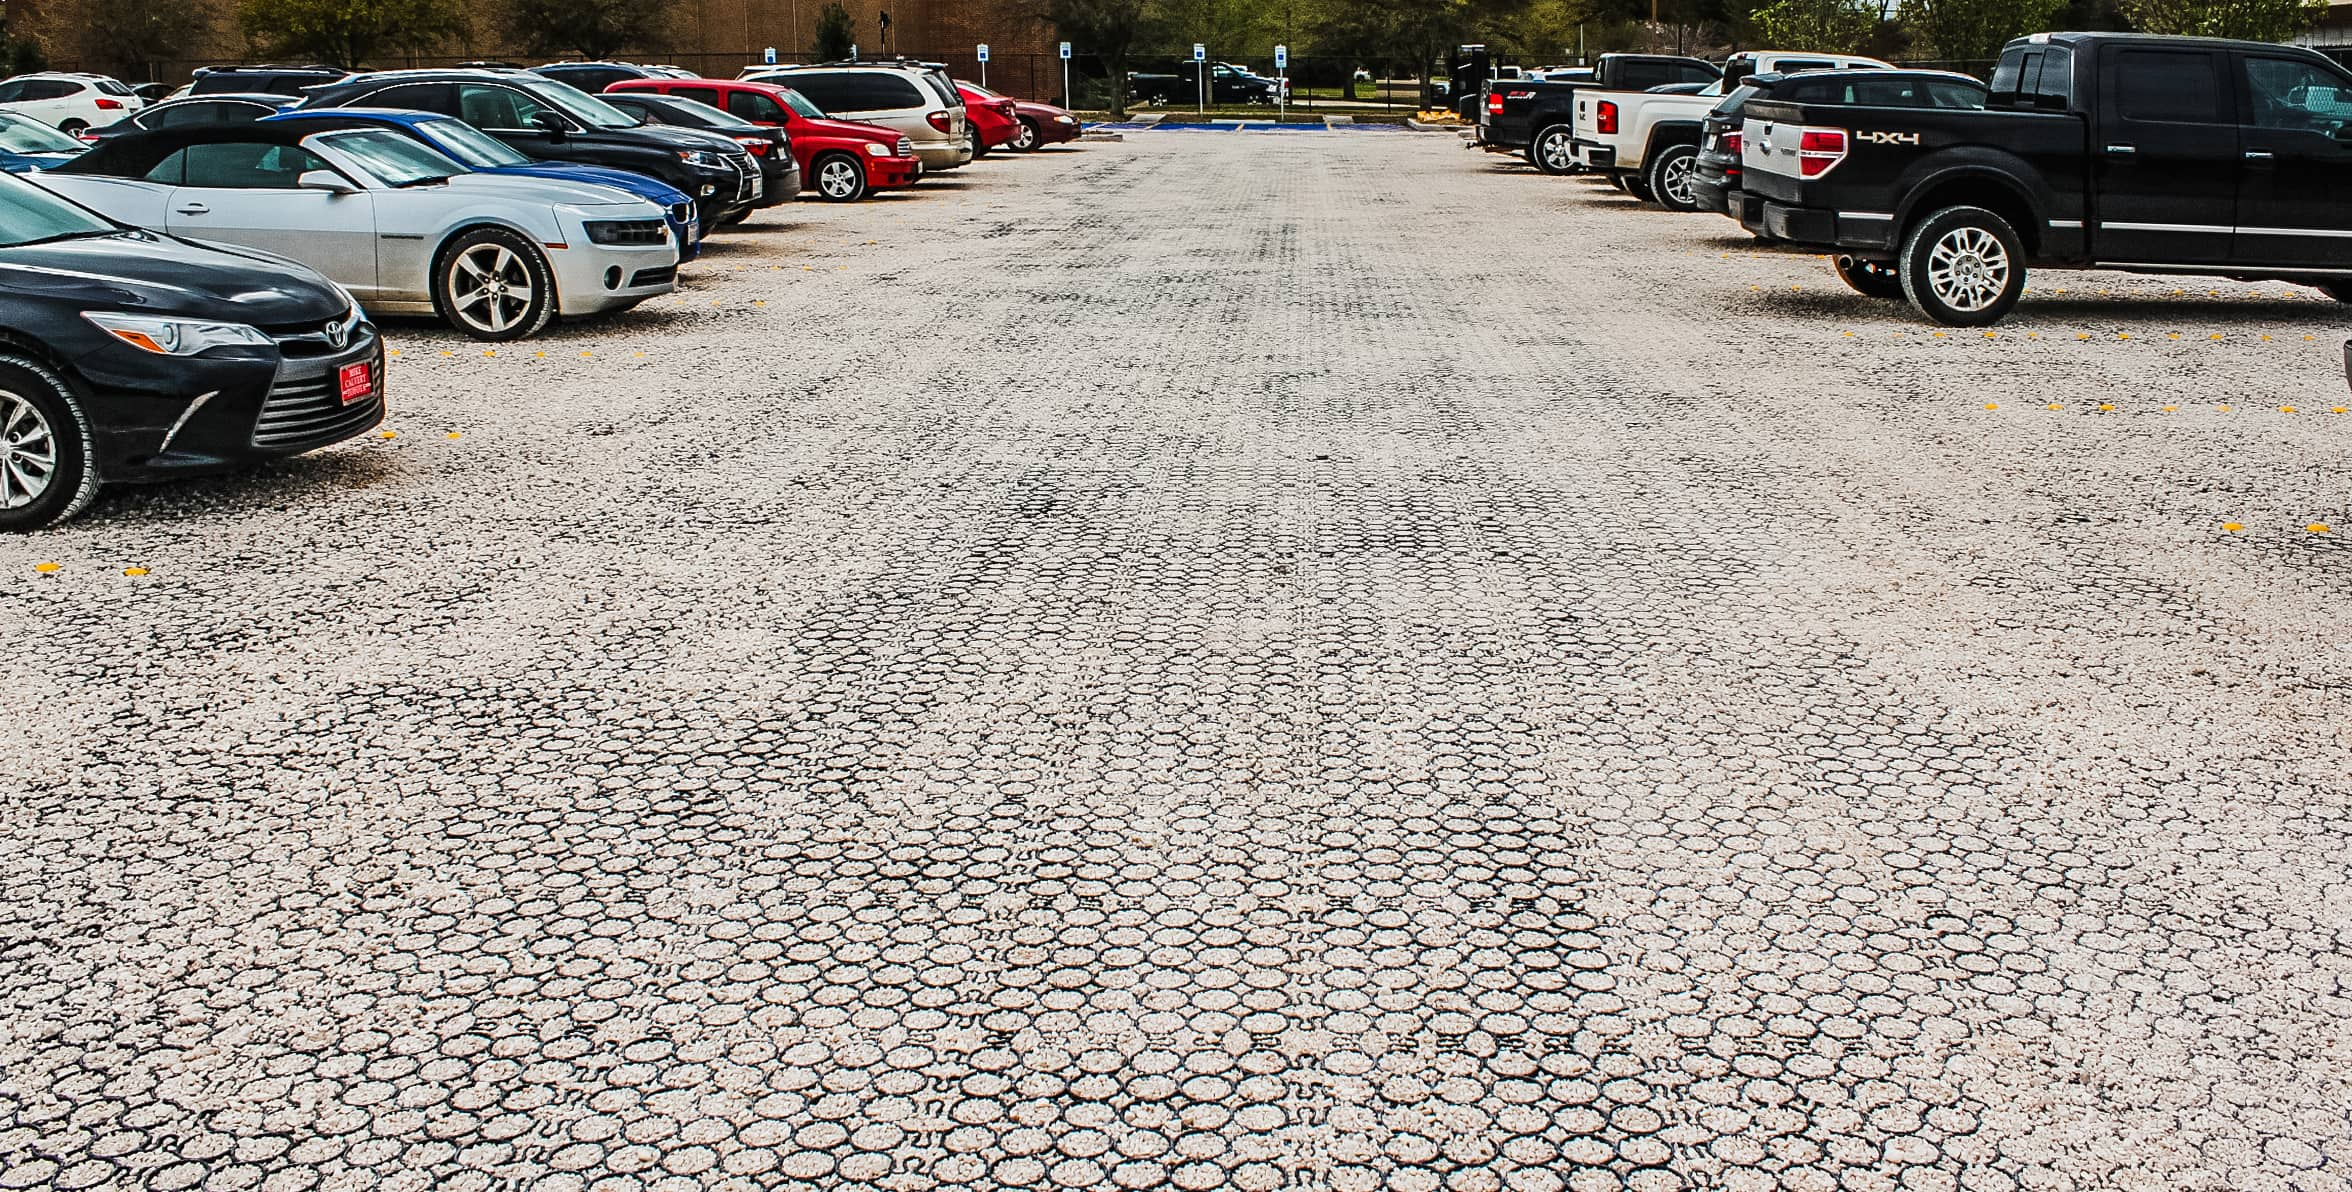 North Houston Bike Park parking lots completed - TRUEGRID Pavers